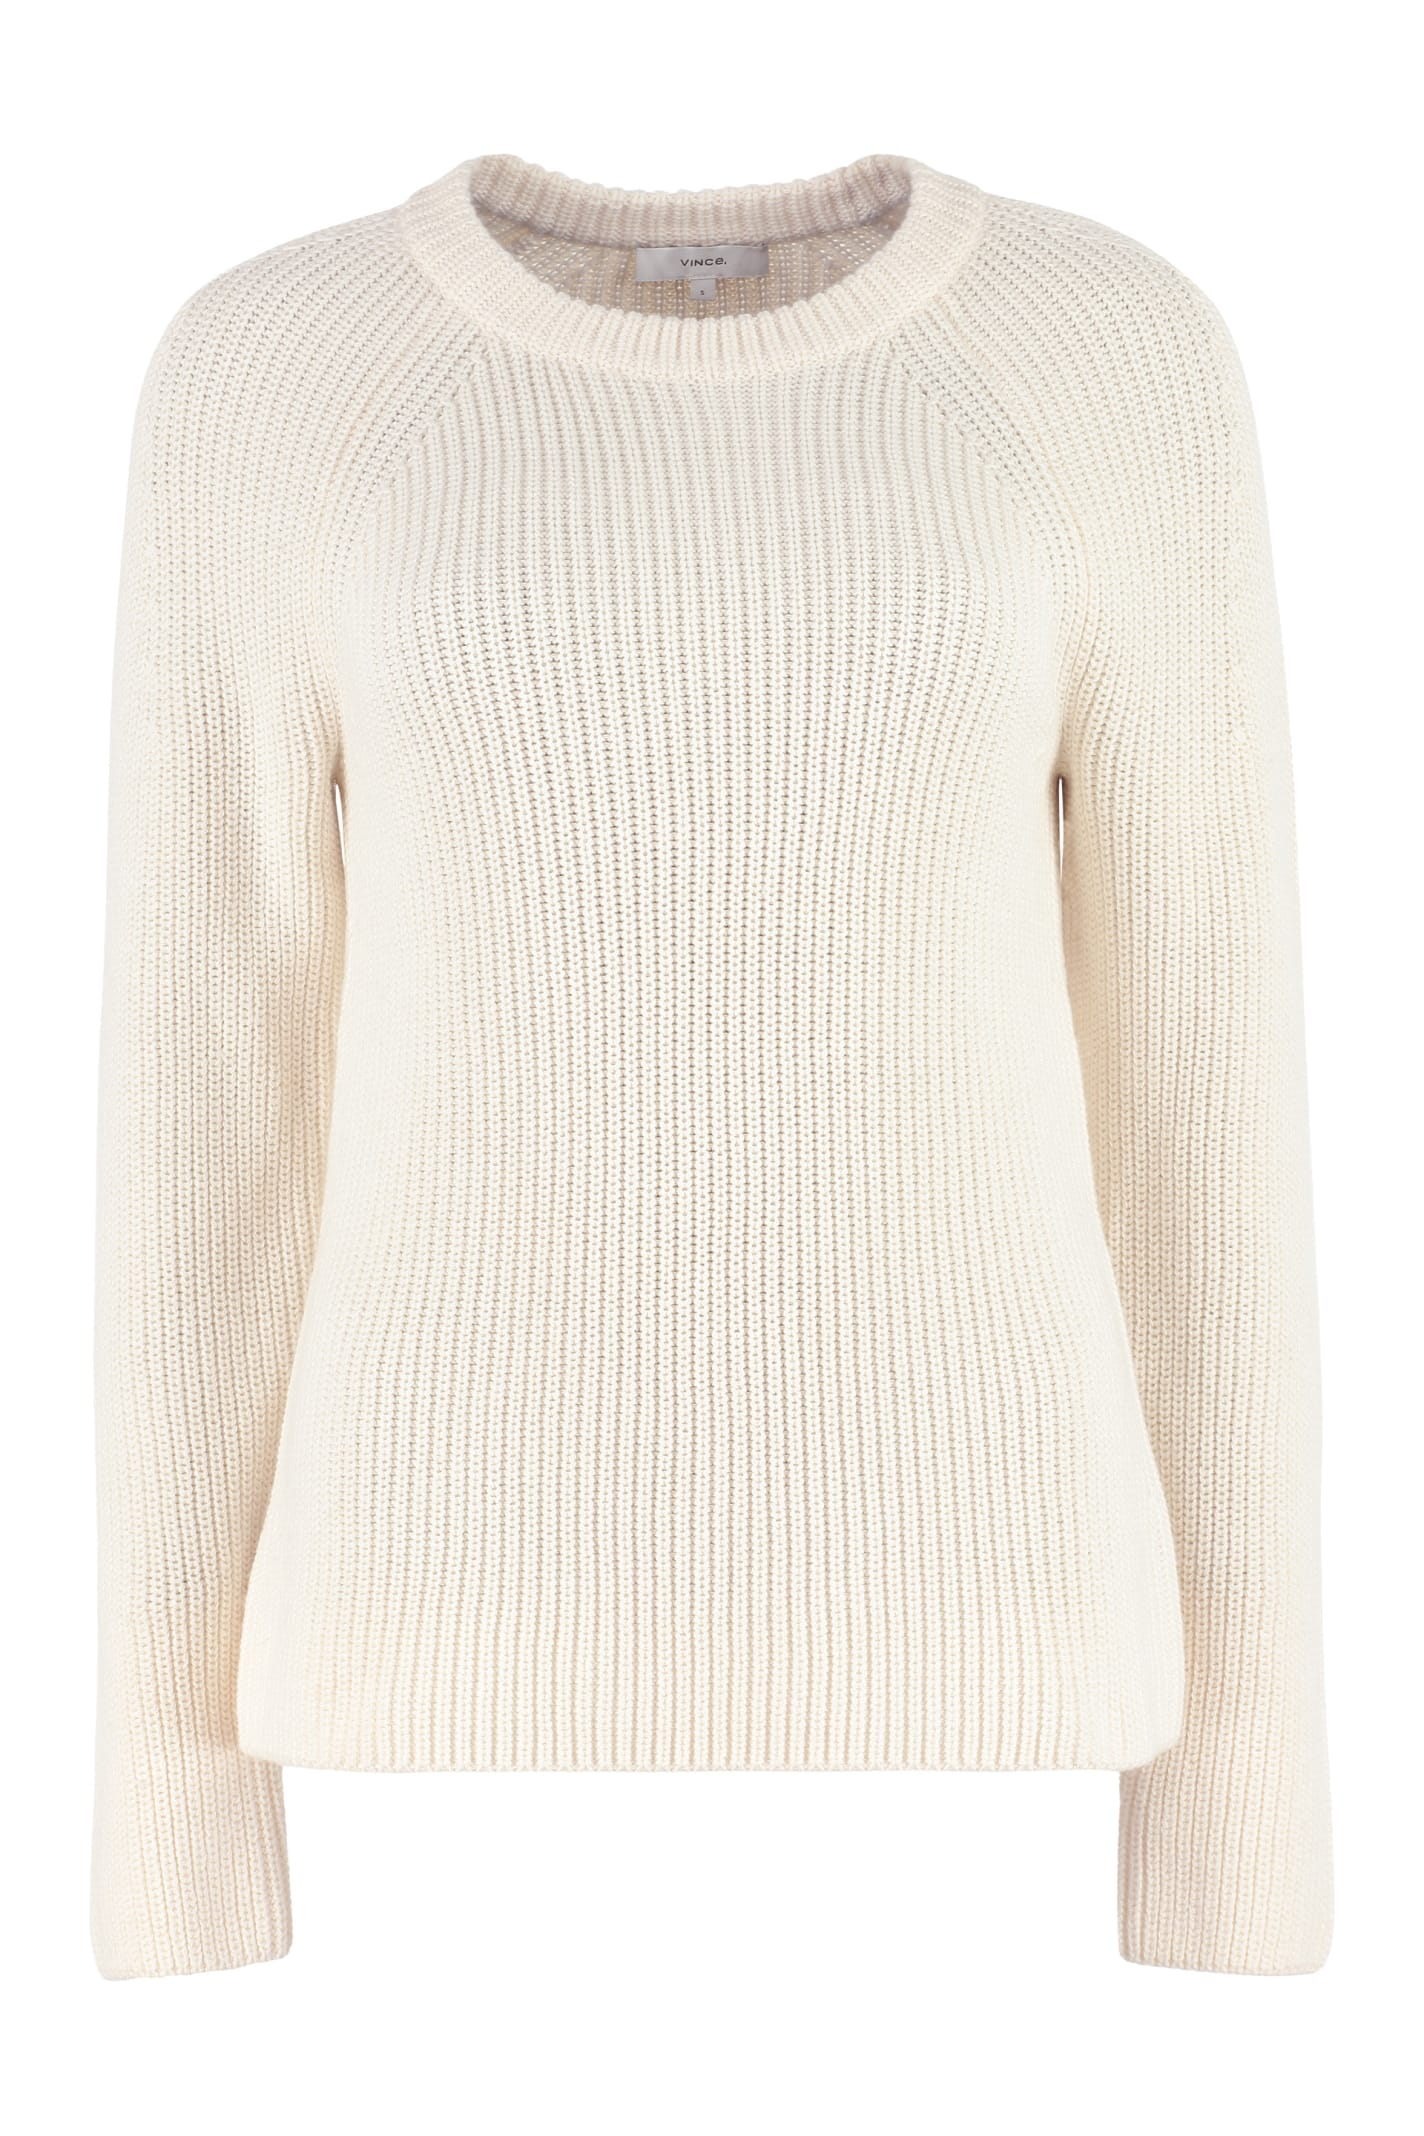 Vince Ribbed Crew-neck Sweater